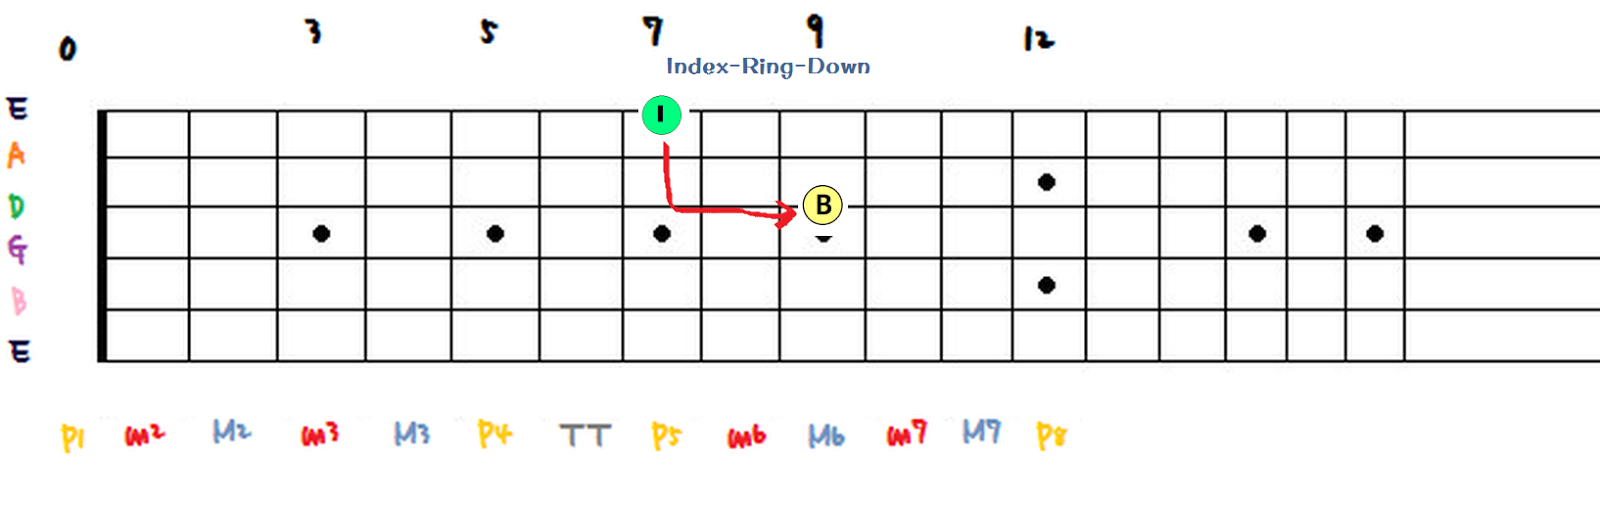 Riptide Guitar Span The Fretboard To Find Tones Easily